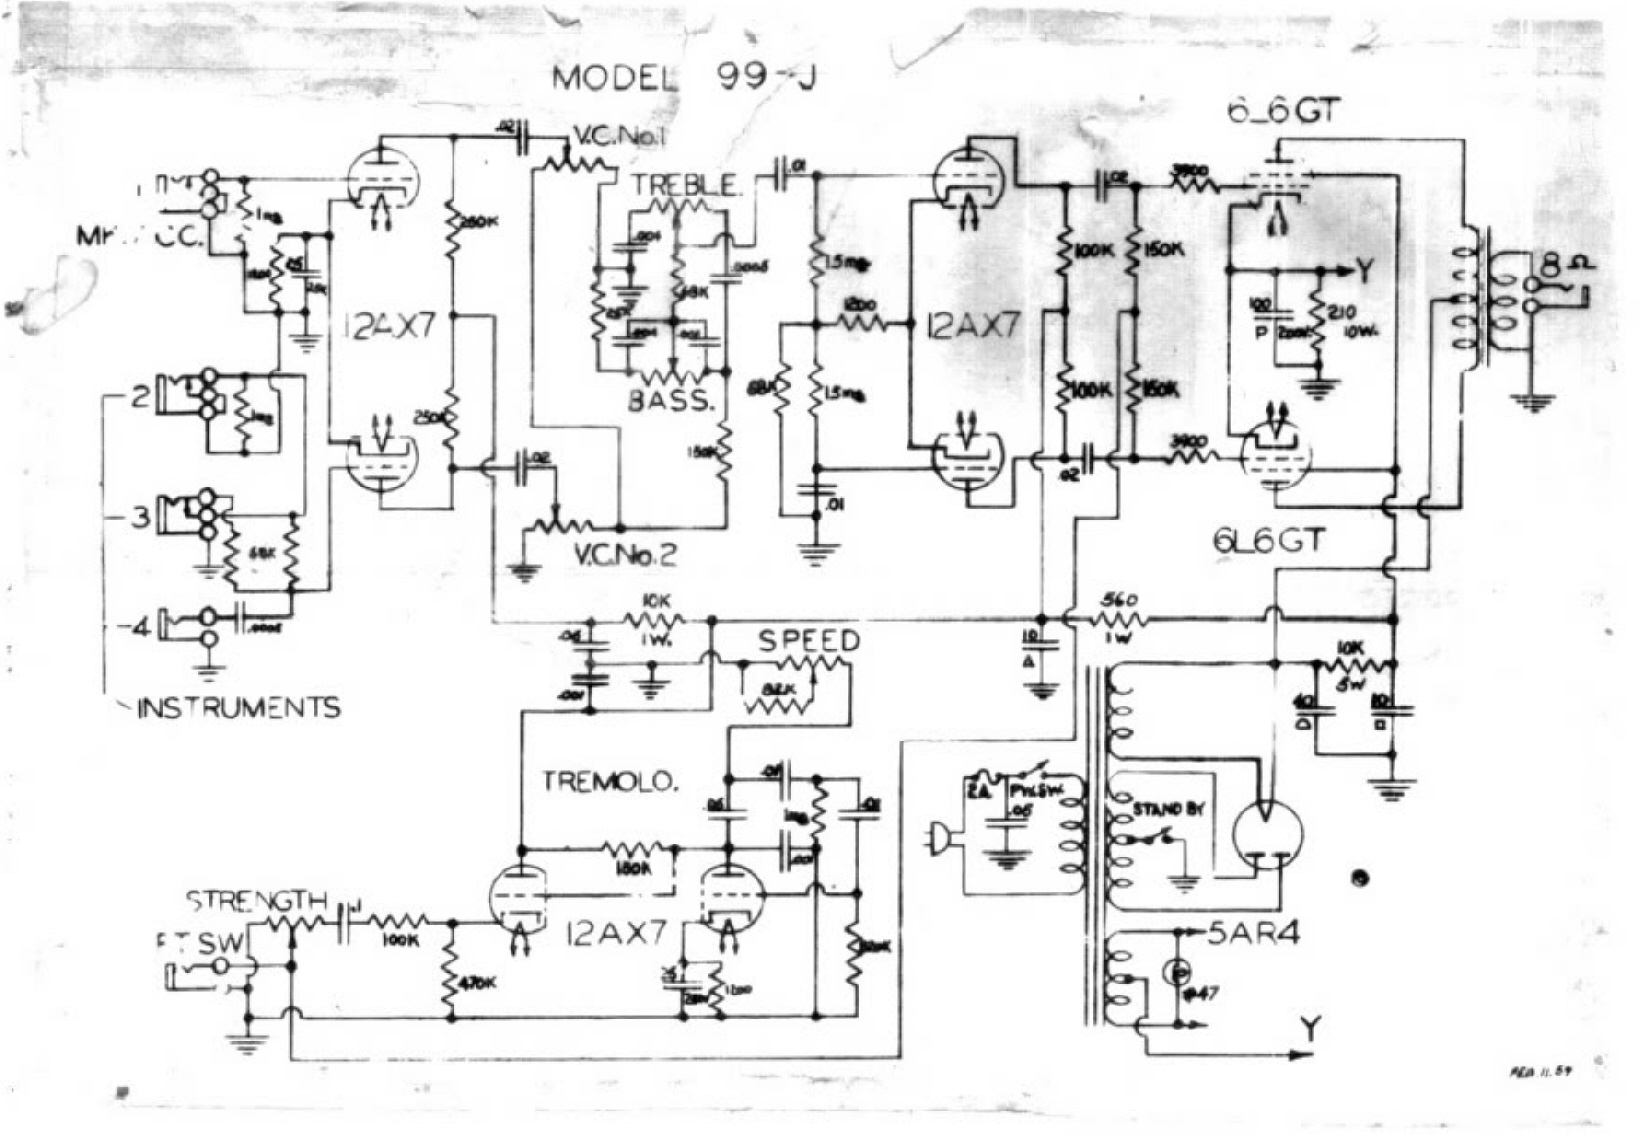 prowess amplifiers - misc - schematics - guild 99 j